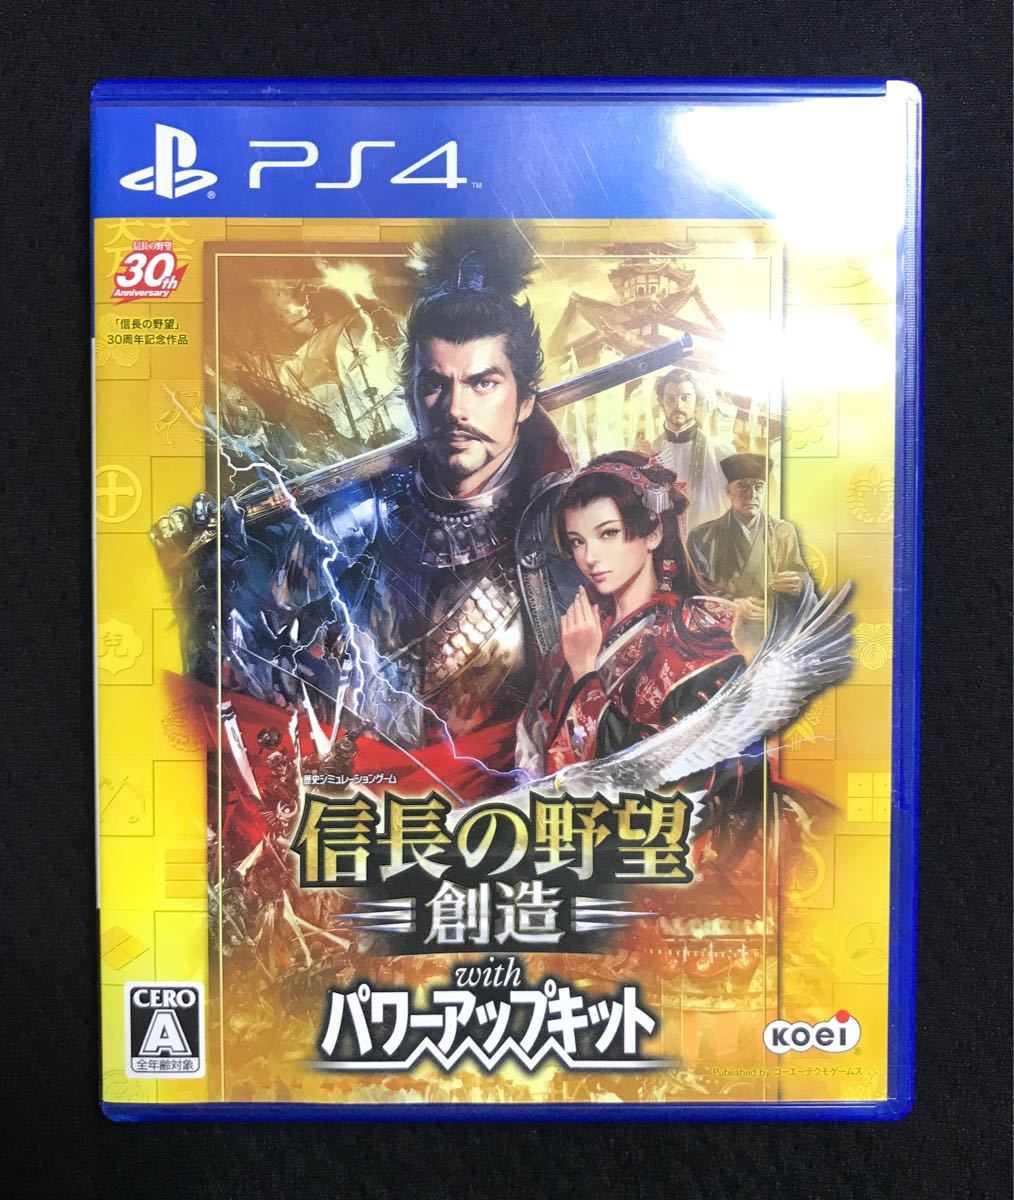 PS4ソフト 信長の野望・創造 with パワーアップキット - PS4 生産完了品 創造 with pk 中古品